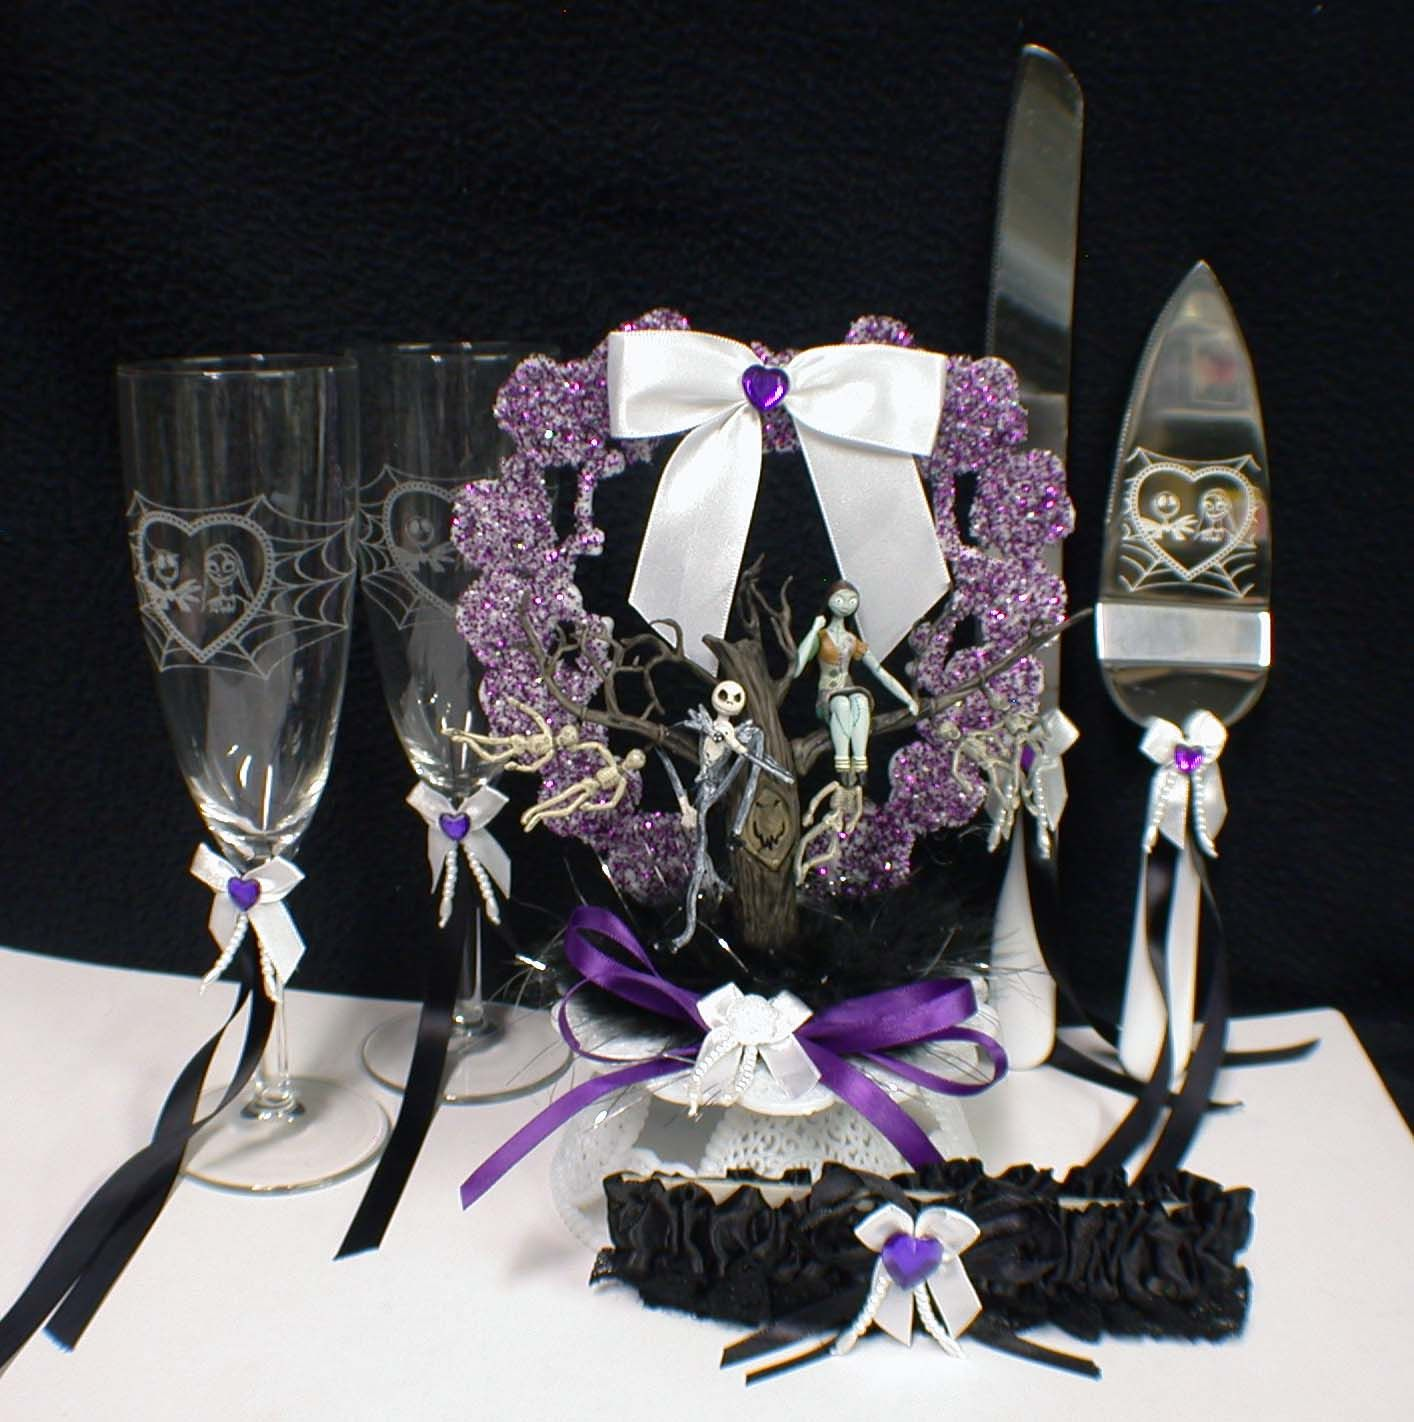 nightmare before christmas themed wedding photos 8 nightmare - Nightmare Before Christmas Wedding Decorations